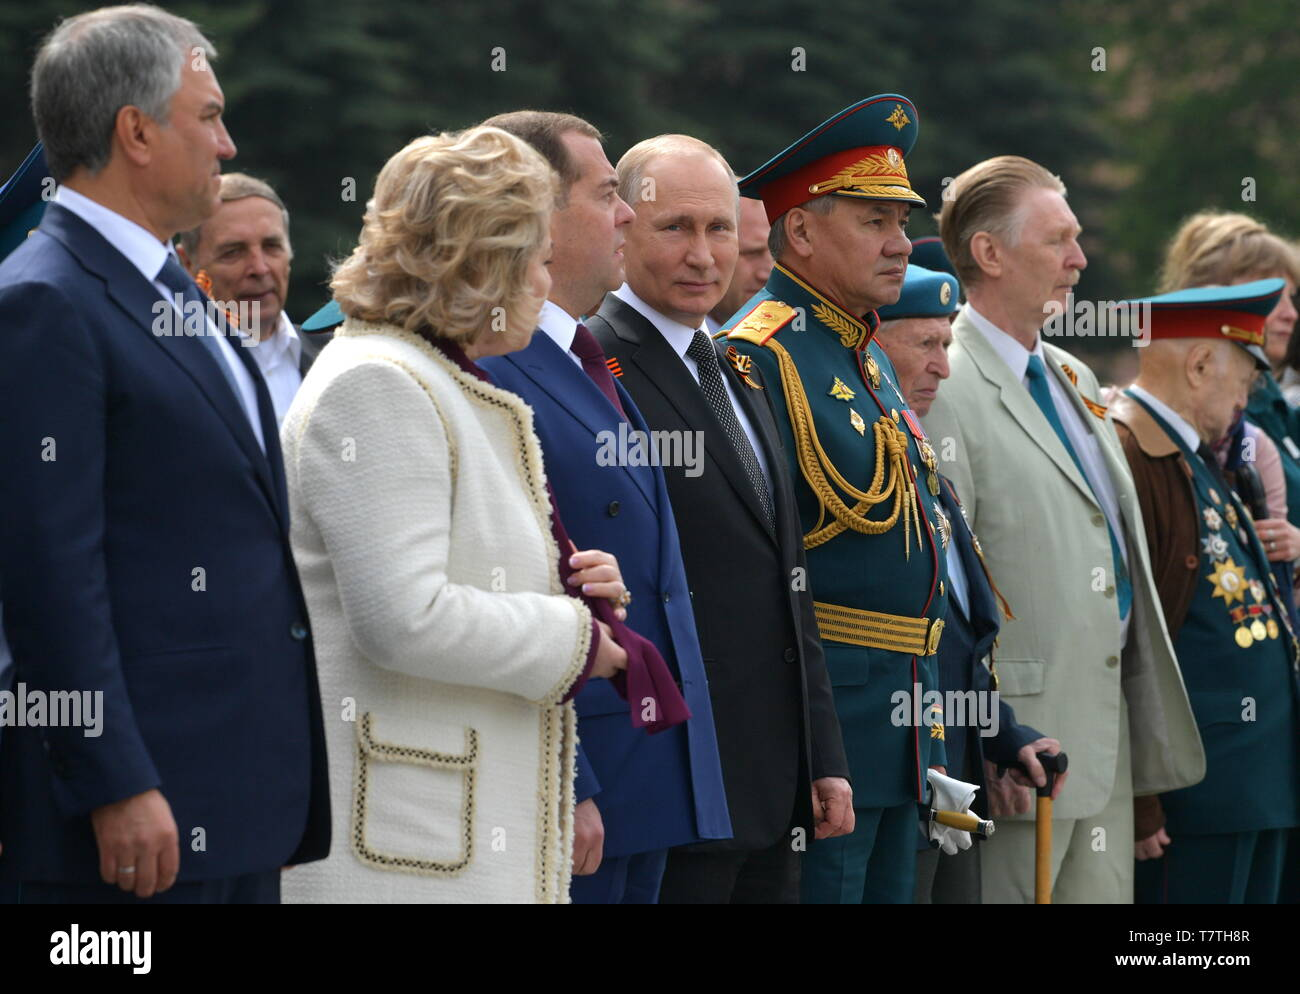 MOSCOW, RUSSIA - MAY 9, 2019: Russian State Duma Chairman Vyacheslav Volodin, Russian Federation Council Chairwoman Valentina Matviyenko, Russia's Prime Minister Dmitry Medvedev, Russia's President Vladimir Putin, Russia's Defence Minister Sergei Shoigu (L-R) during a ceremony to lay flowers at the Tomb of the Unknown Soldier by the Kremlin Wall during celebrations marking the 74th anniversary of the victory of the Soviet Red Army over Nazi Germany in the Great Patriotic War of 1941-45, the Eastern Front of the Second World War. Alexei Druzhinin/Russian Presidential Press and Information Offic - Stock Image